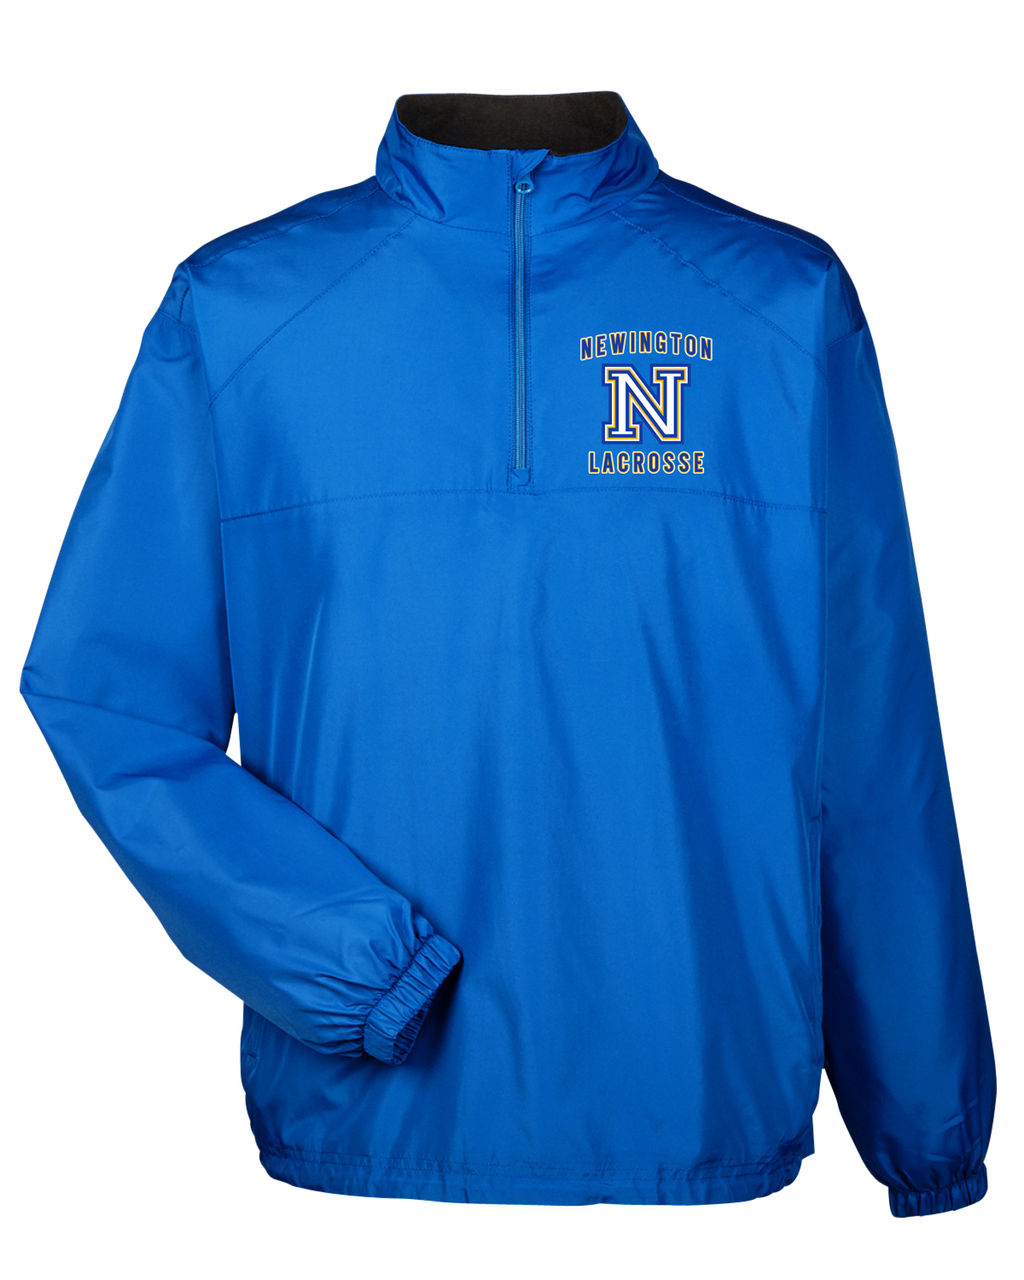 Newington Lacrosse Royal Windbreaker